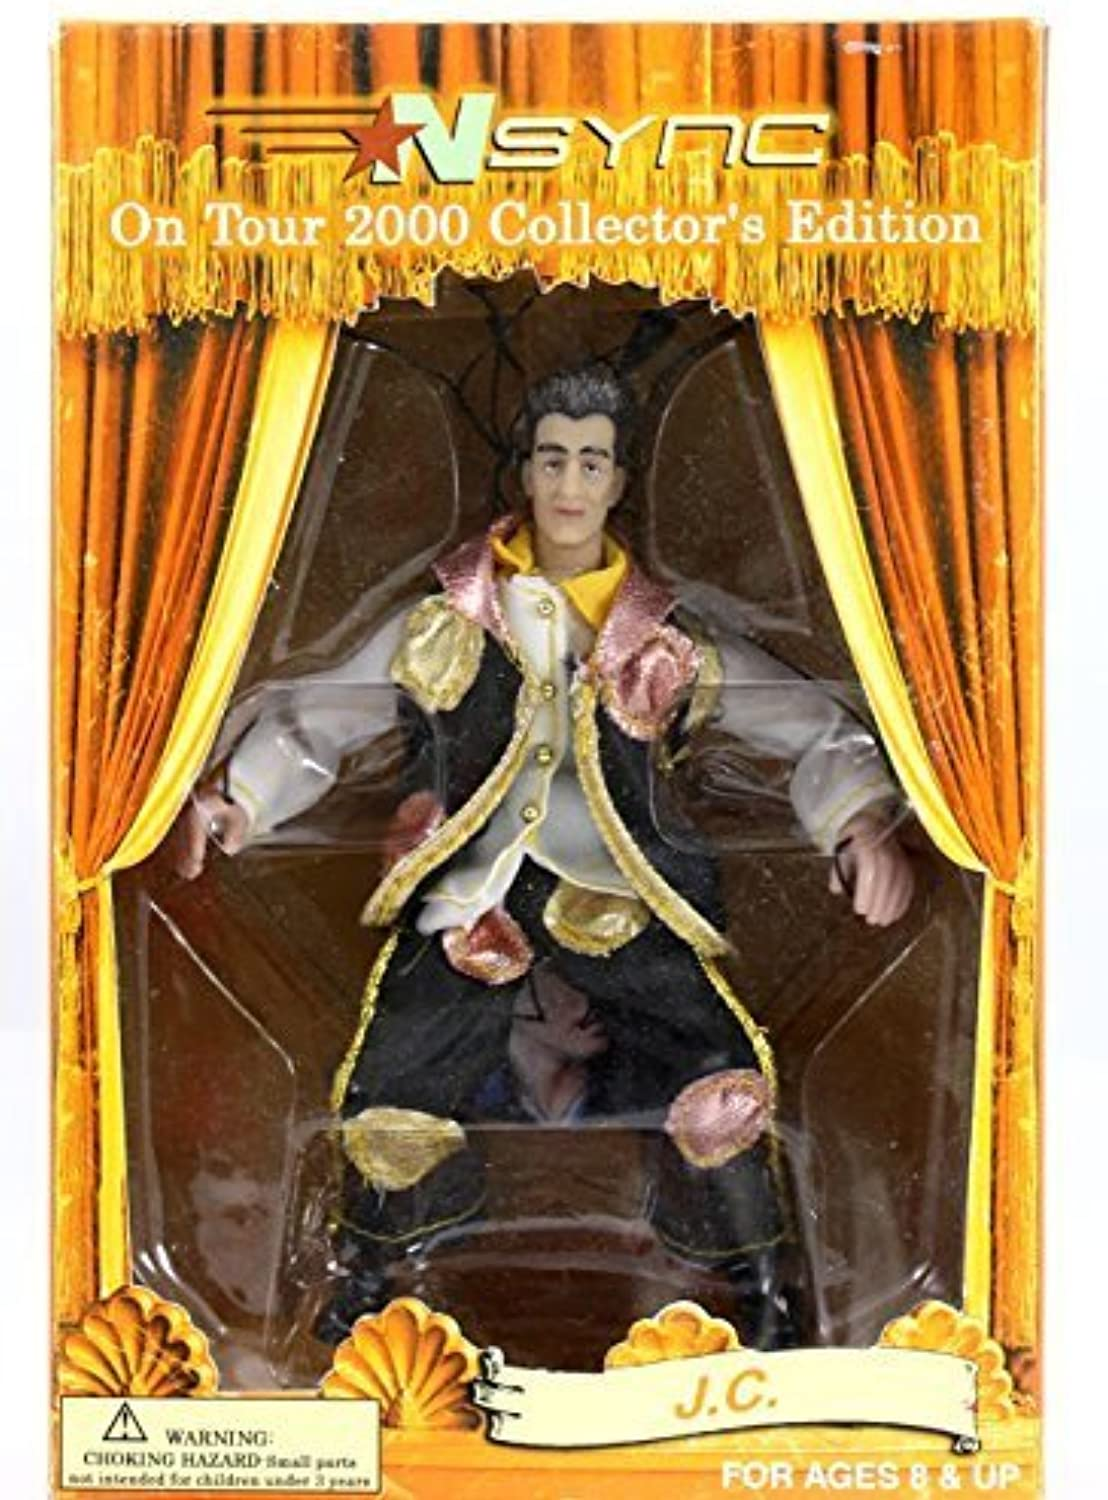 NSync on Tour 2000 Collector's Edition, J.C. Marionette by All Entertainment